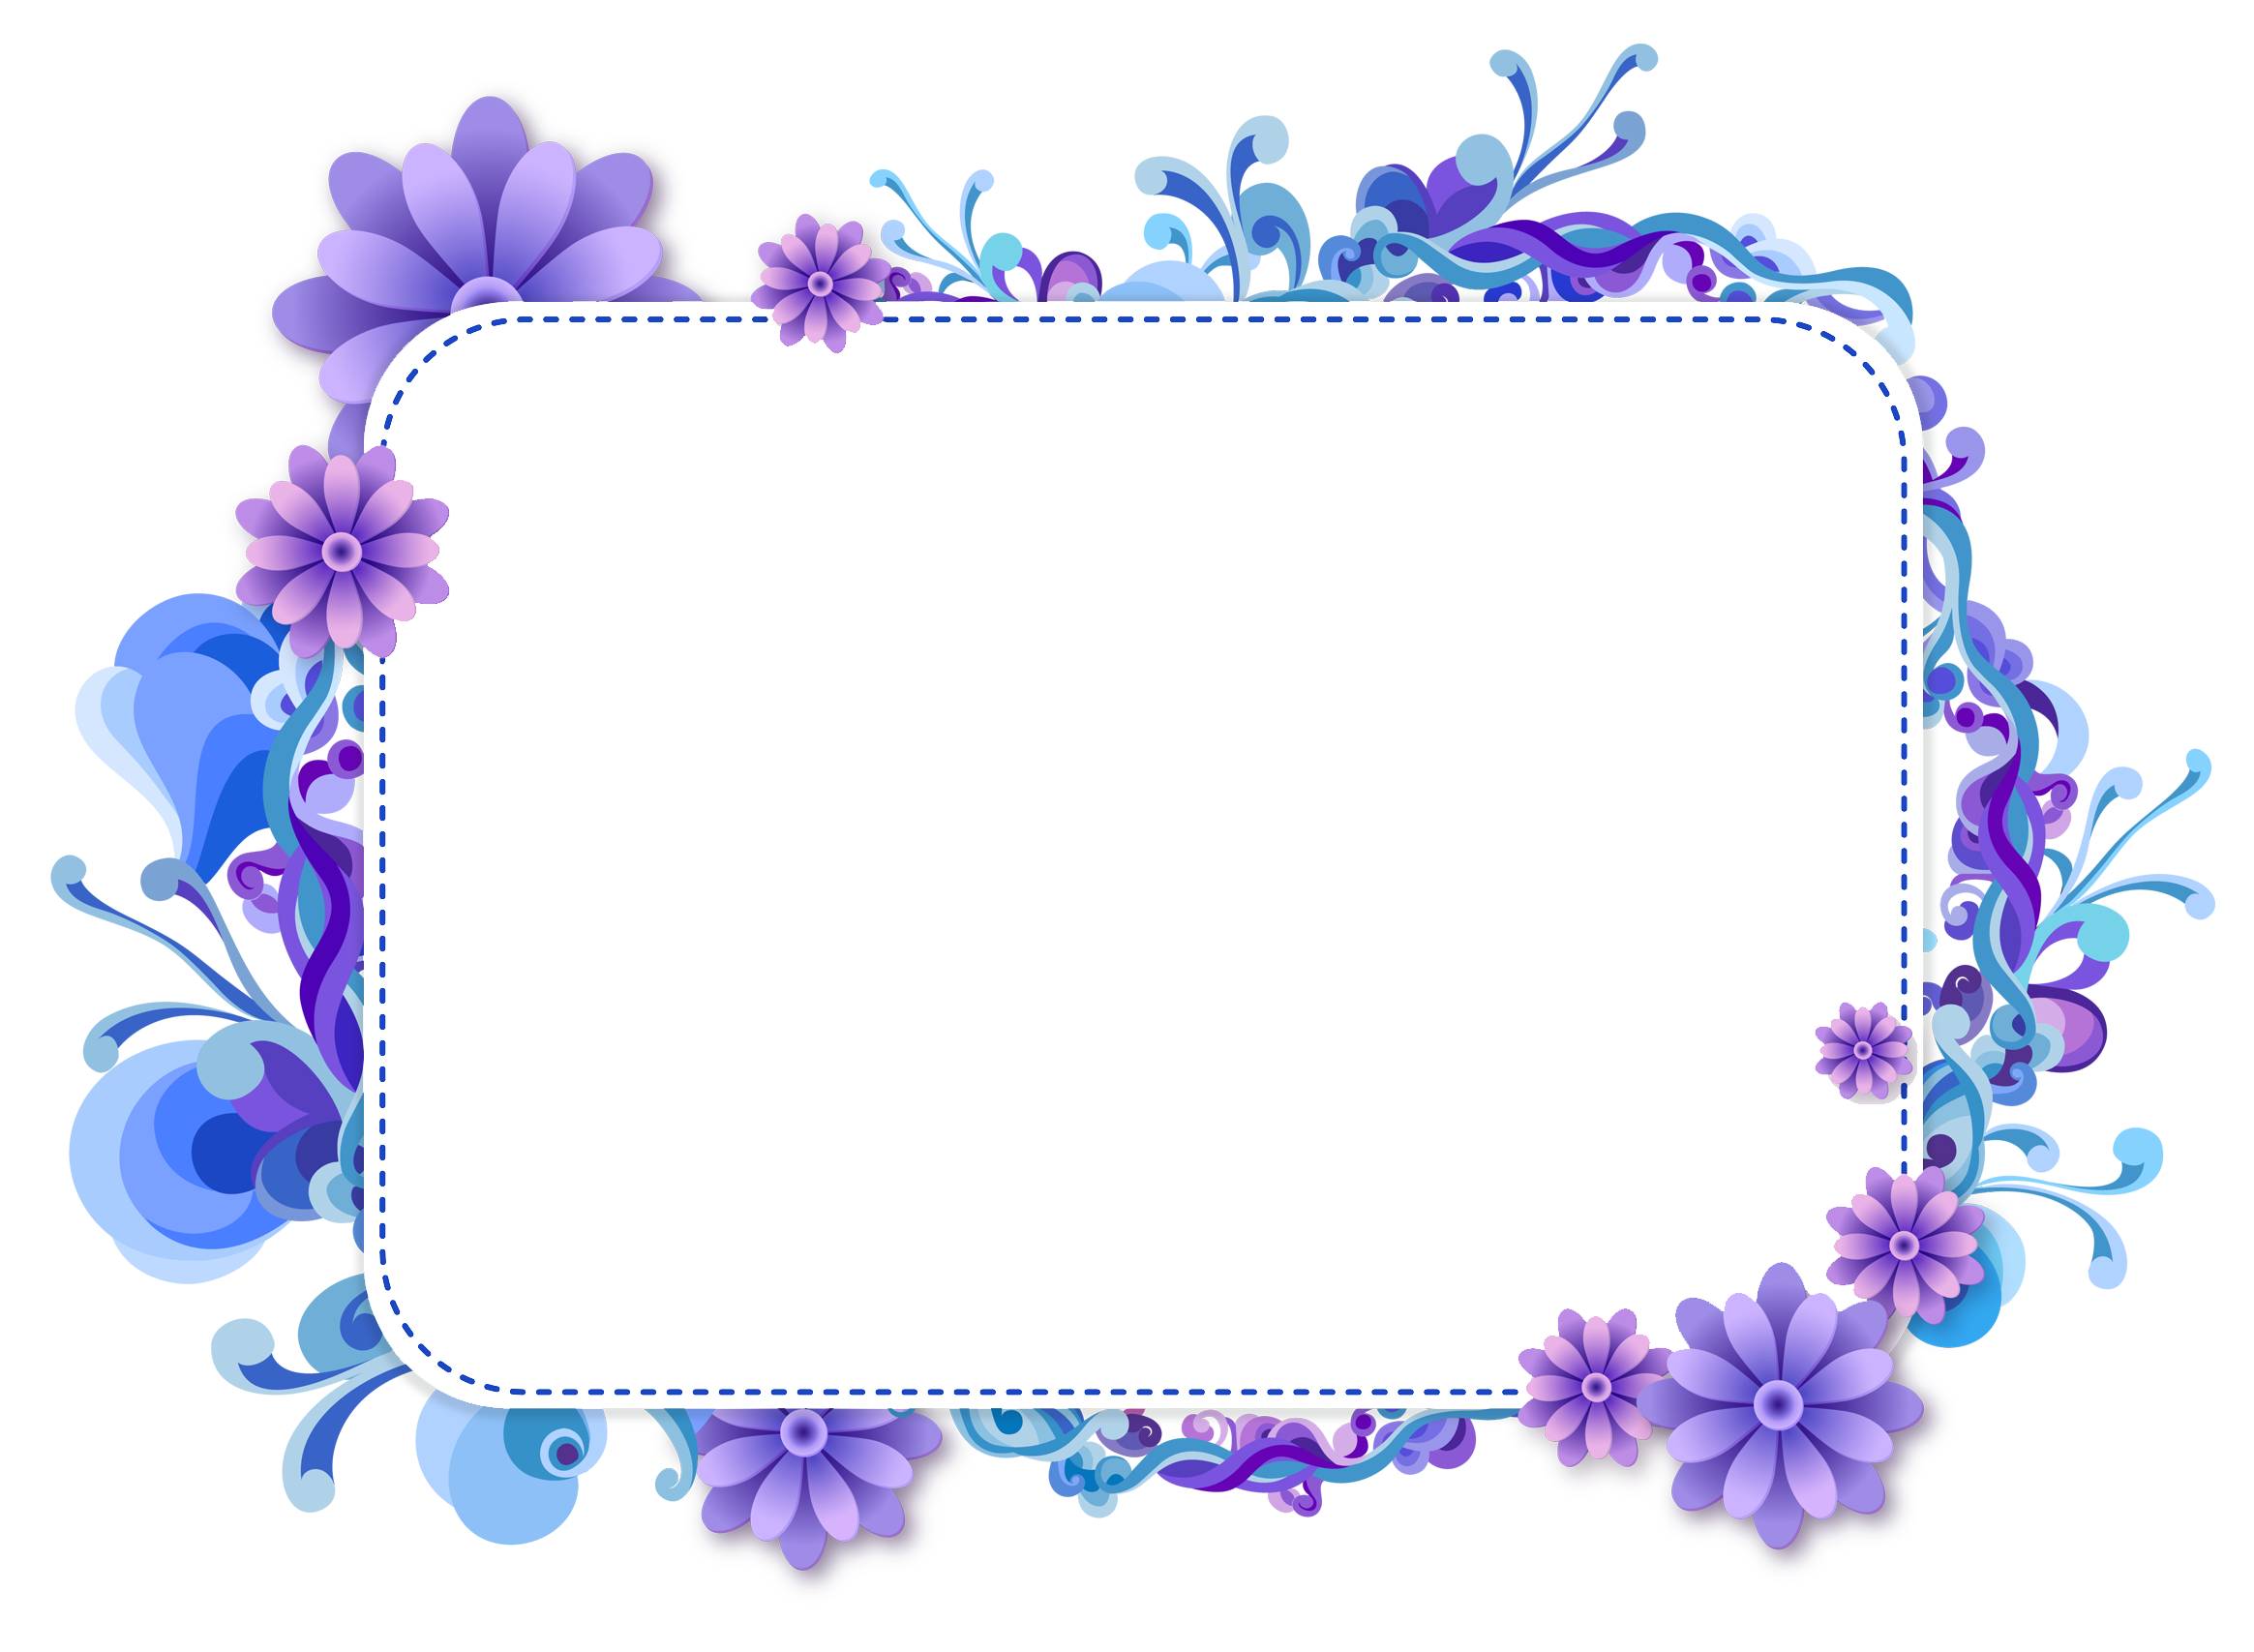 Blue flower clipart top. Png photo frame